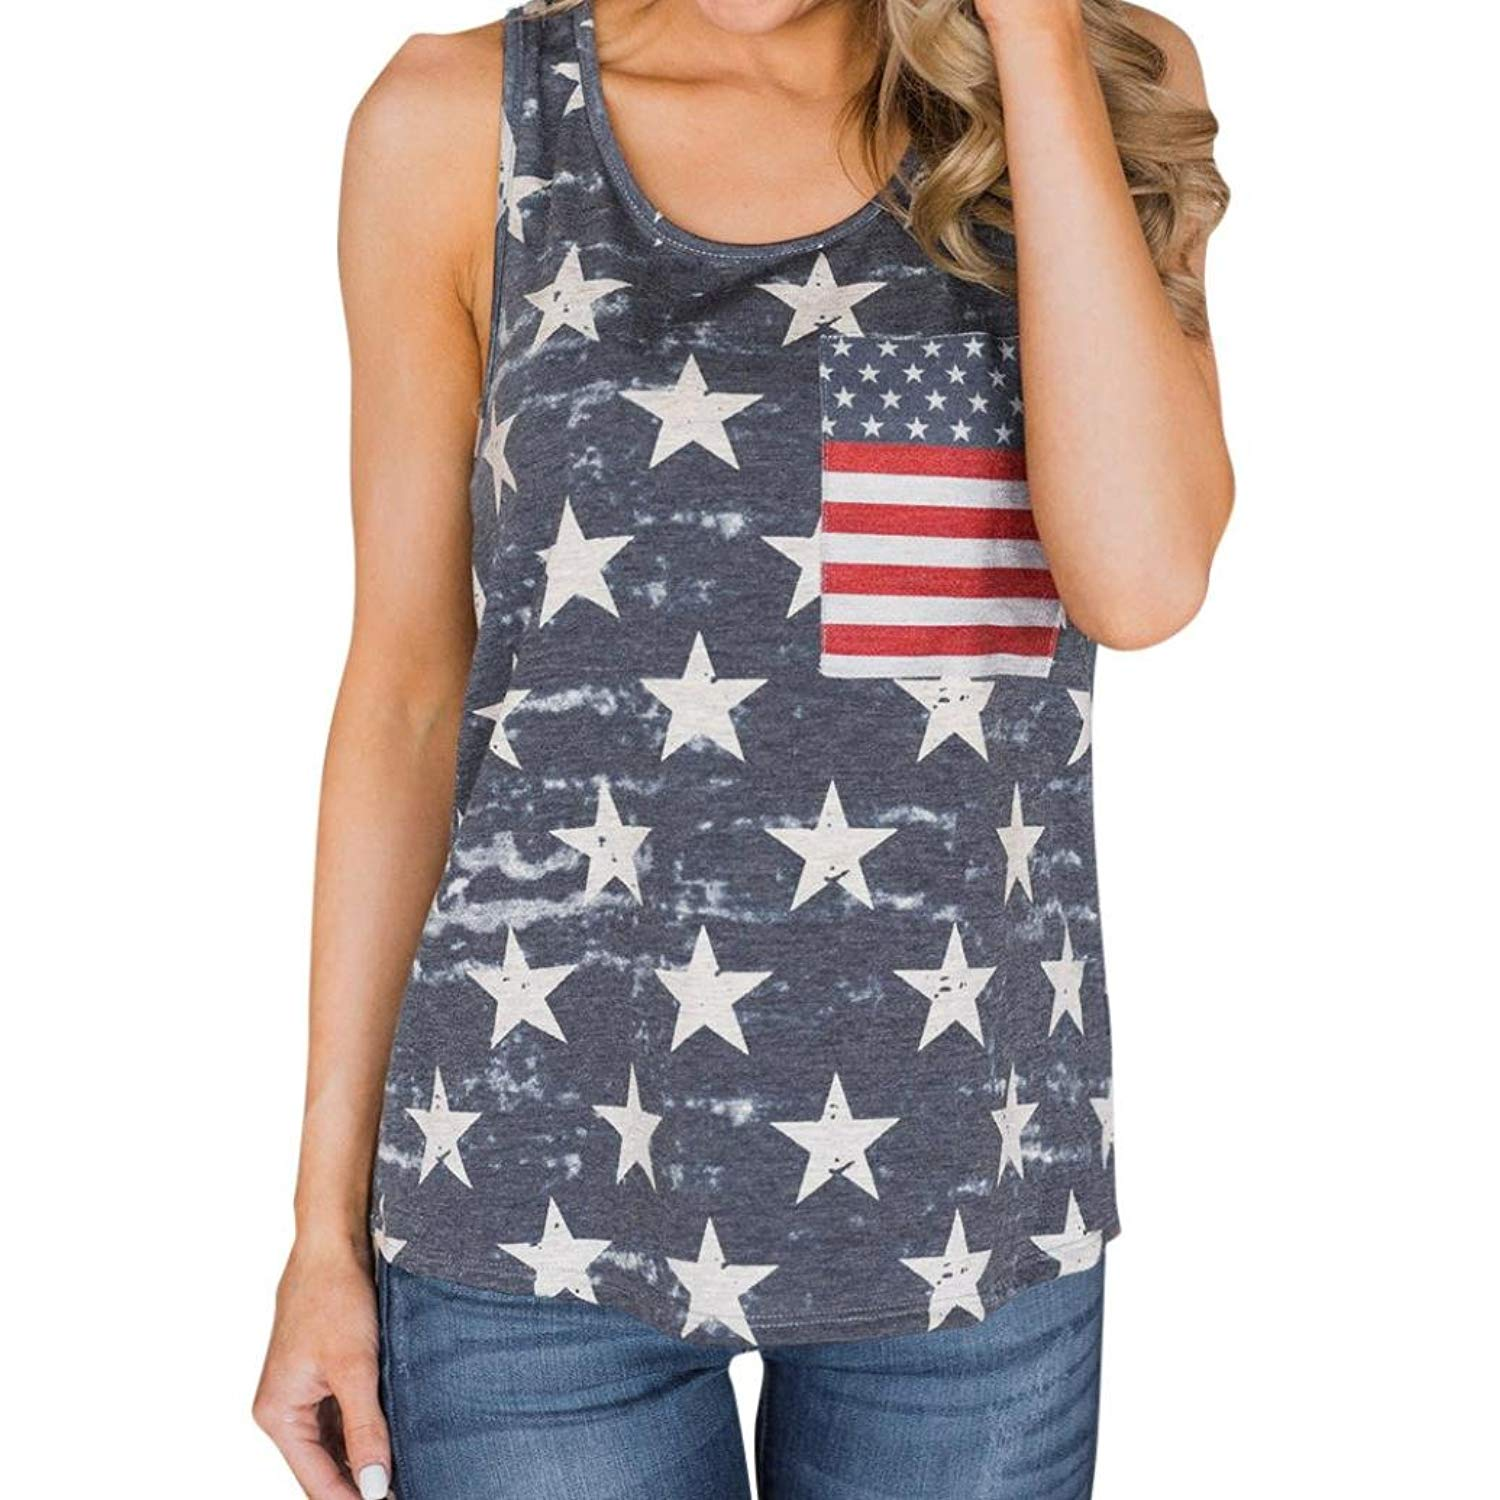 d8642d8cede896 FDelinK Women's American Flag Tank Vest Tops Casual 4th July Sleeveless  Blouse T Shirt